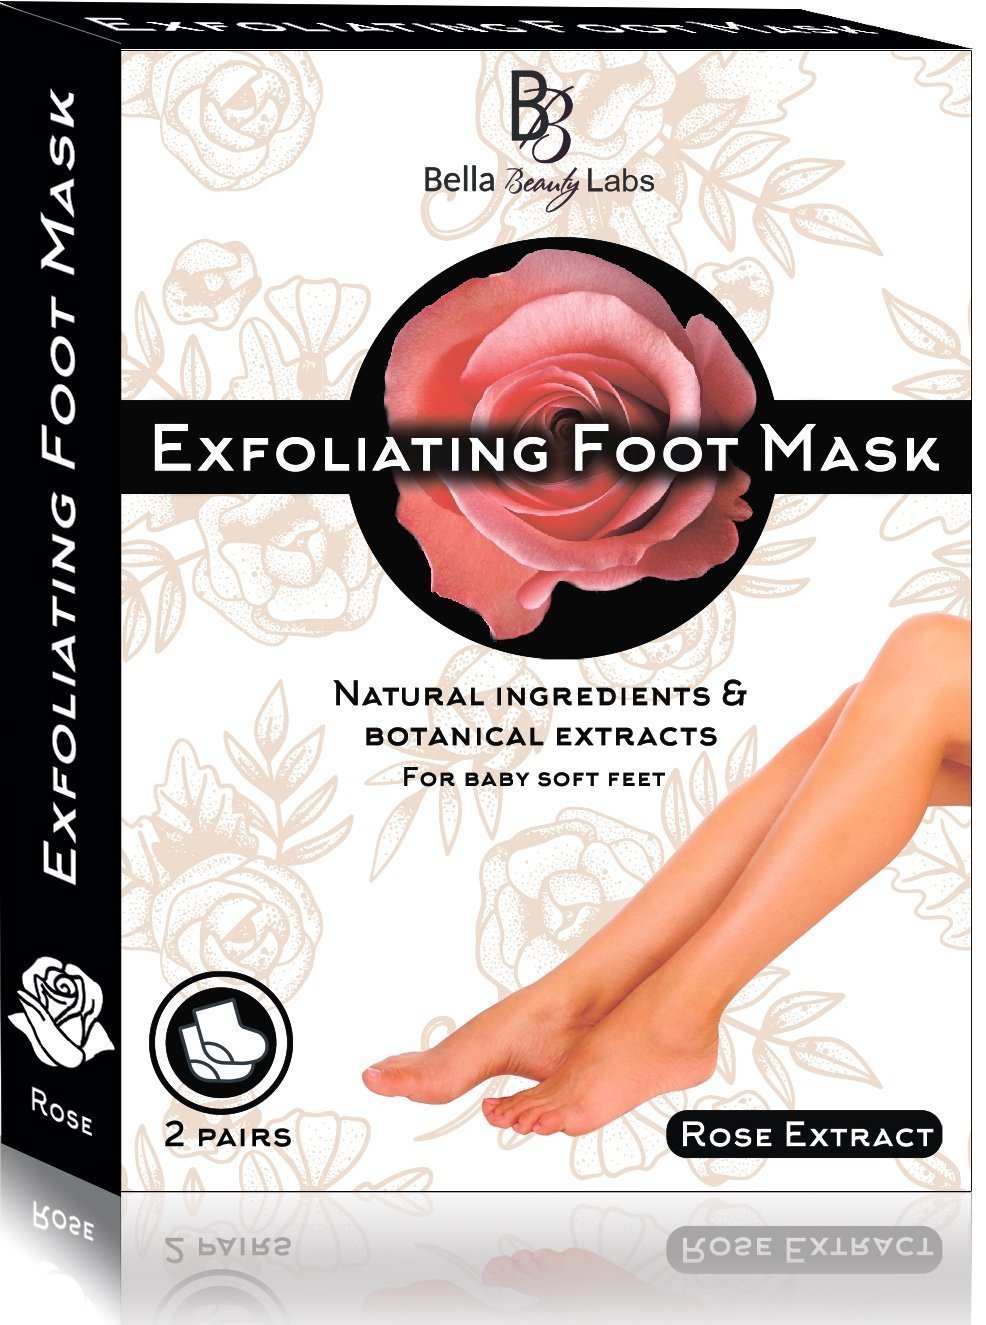 Foot Peel Mask 2 Pack for Smooth Soft Touch Feet - Peeling Away Calluses - Dead Skin Remover - Exfoliating Off Foot Mask for Baby Soft Silk Feet - Gel Socks Booties - Aloe Extract - Natural Rose Scent